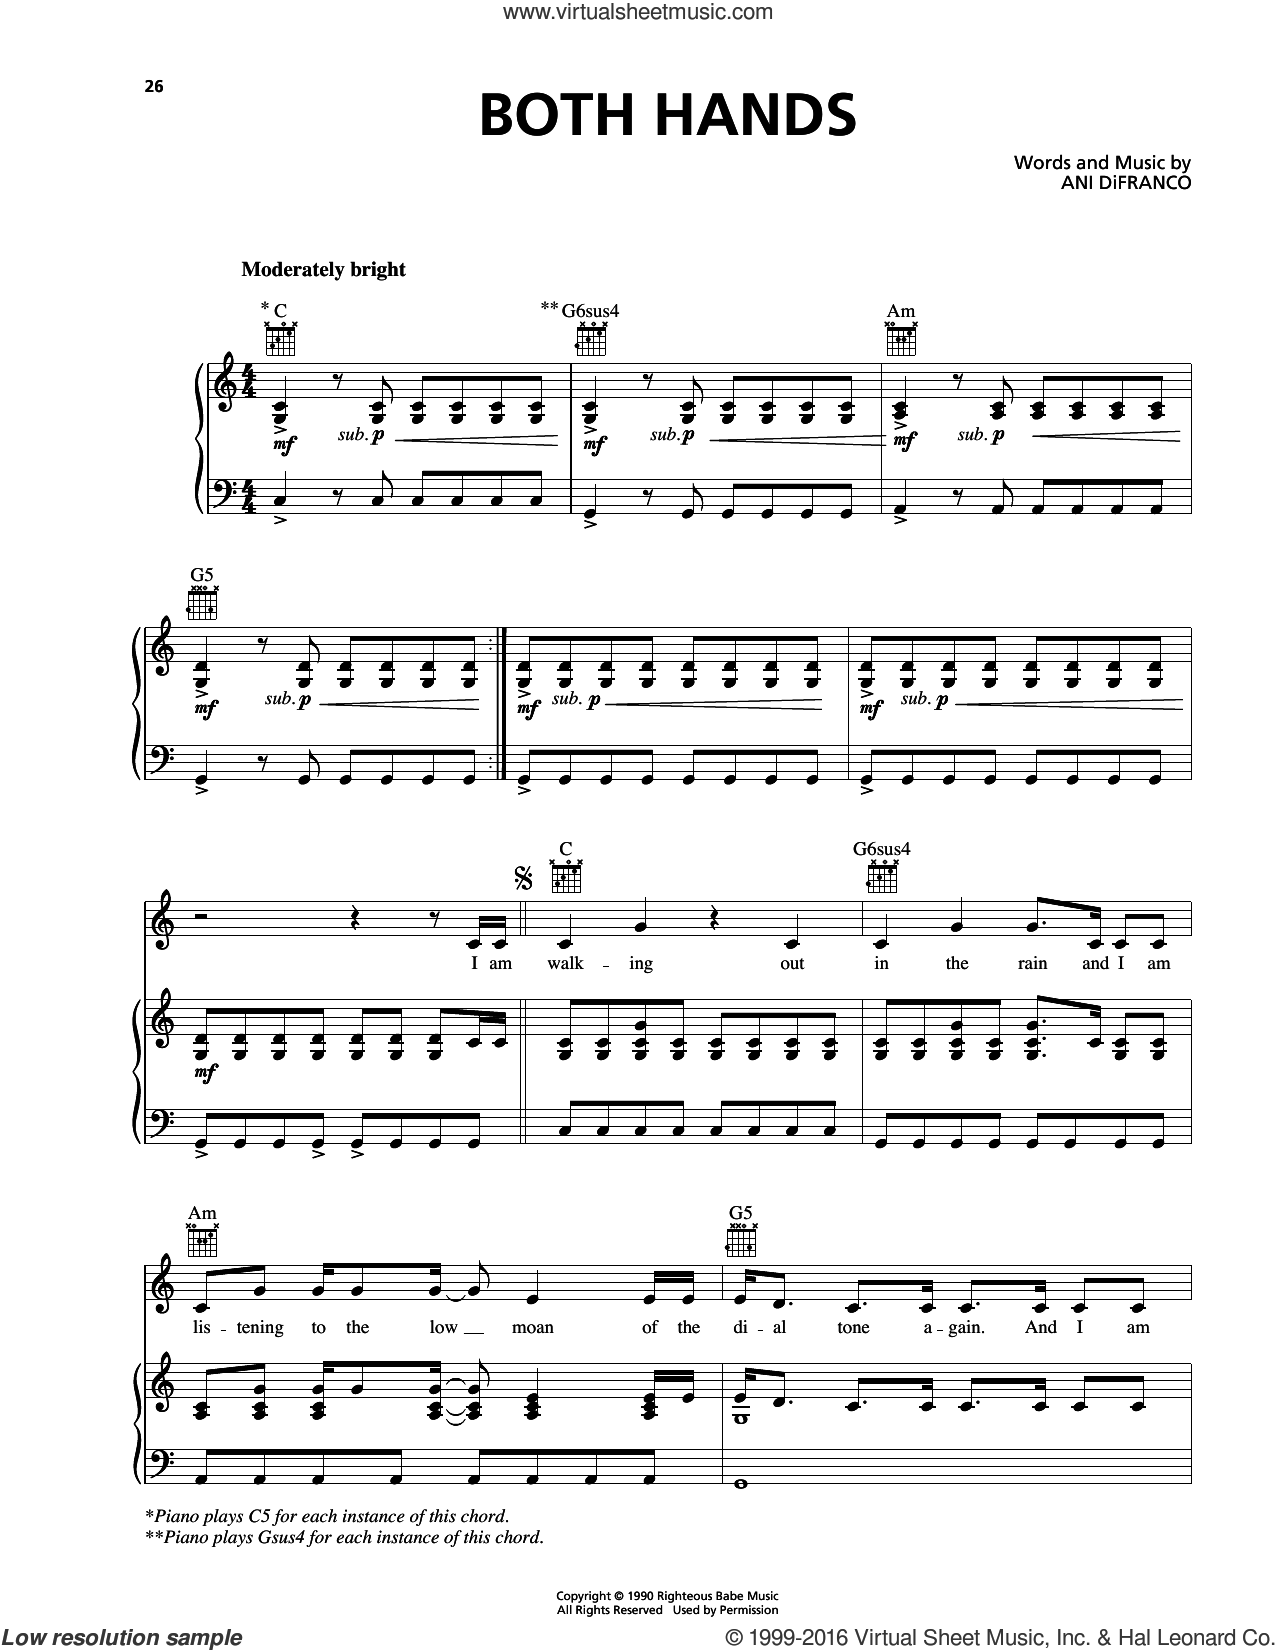 Both Hands sheet music for voice, piano or guitar by Ani DiFranco. Score Image Preview.